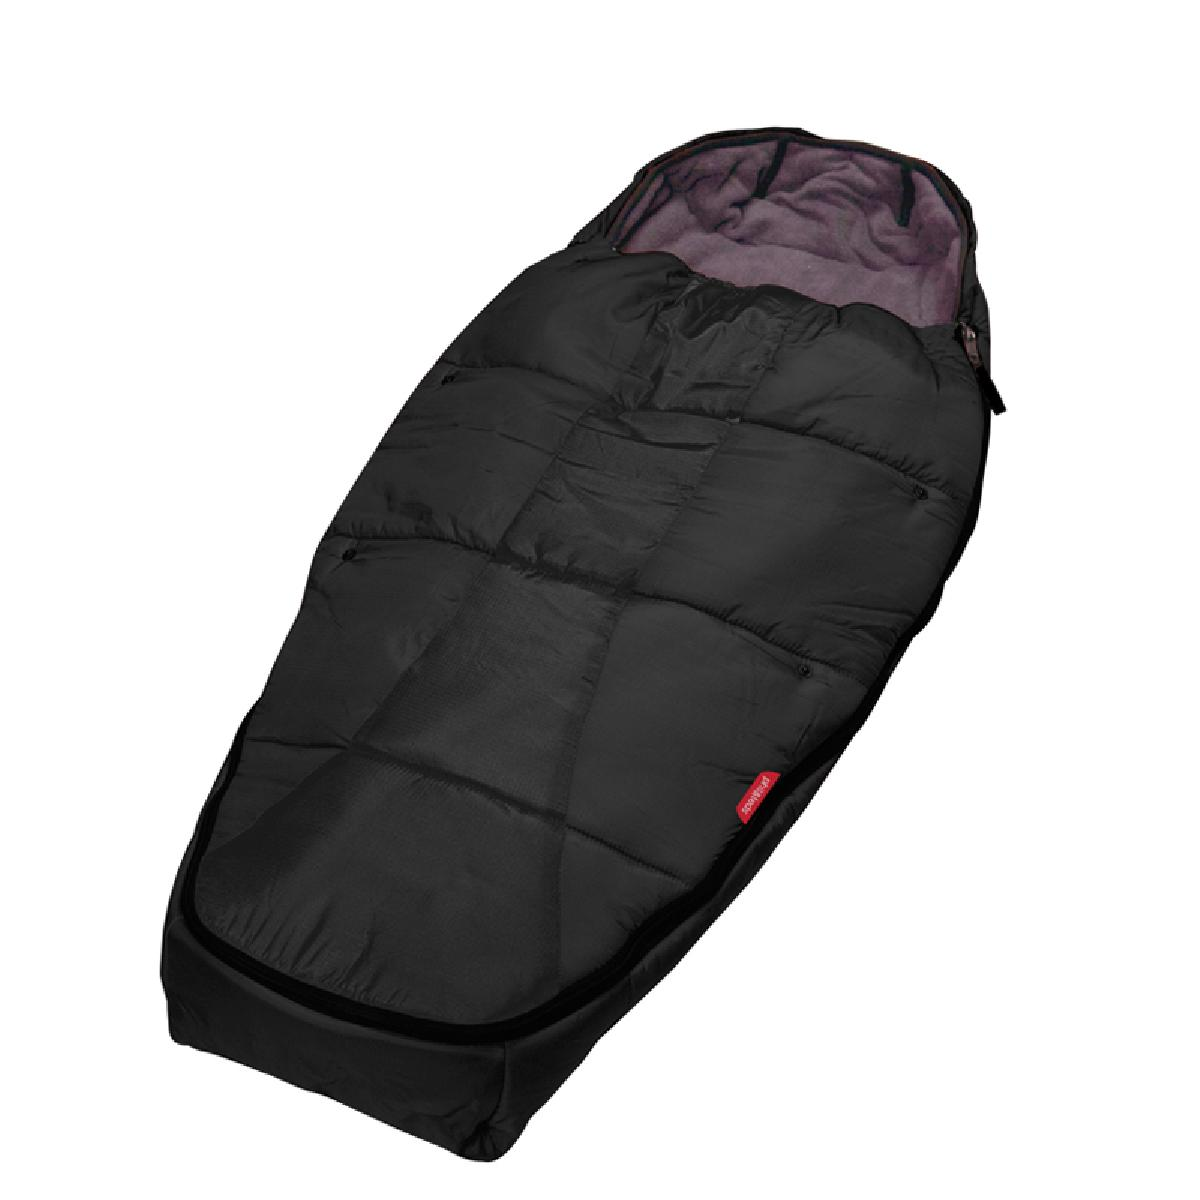 Sleeping bag BLACK-BLACK-30